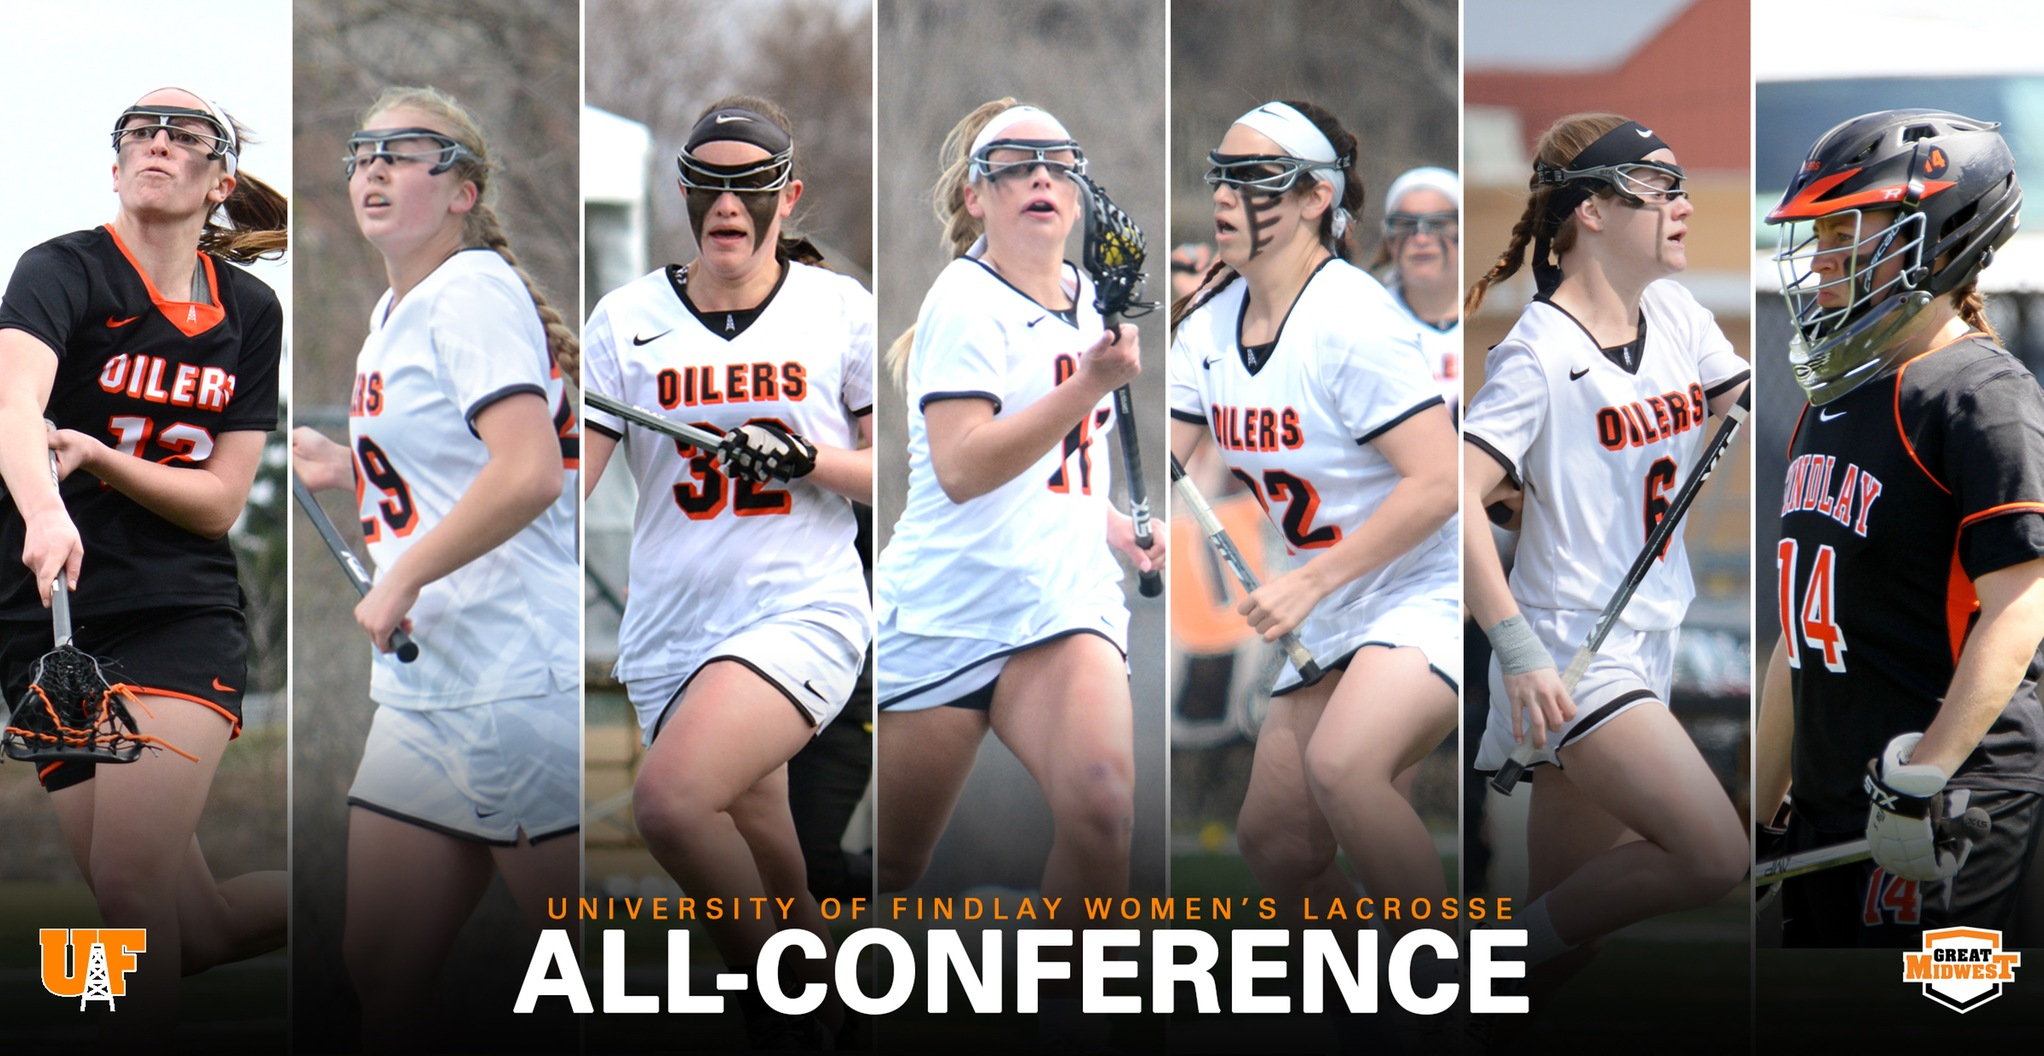 7 Oilers Earn All-Conference Honors